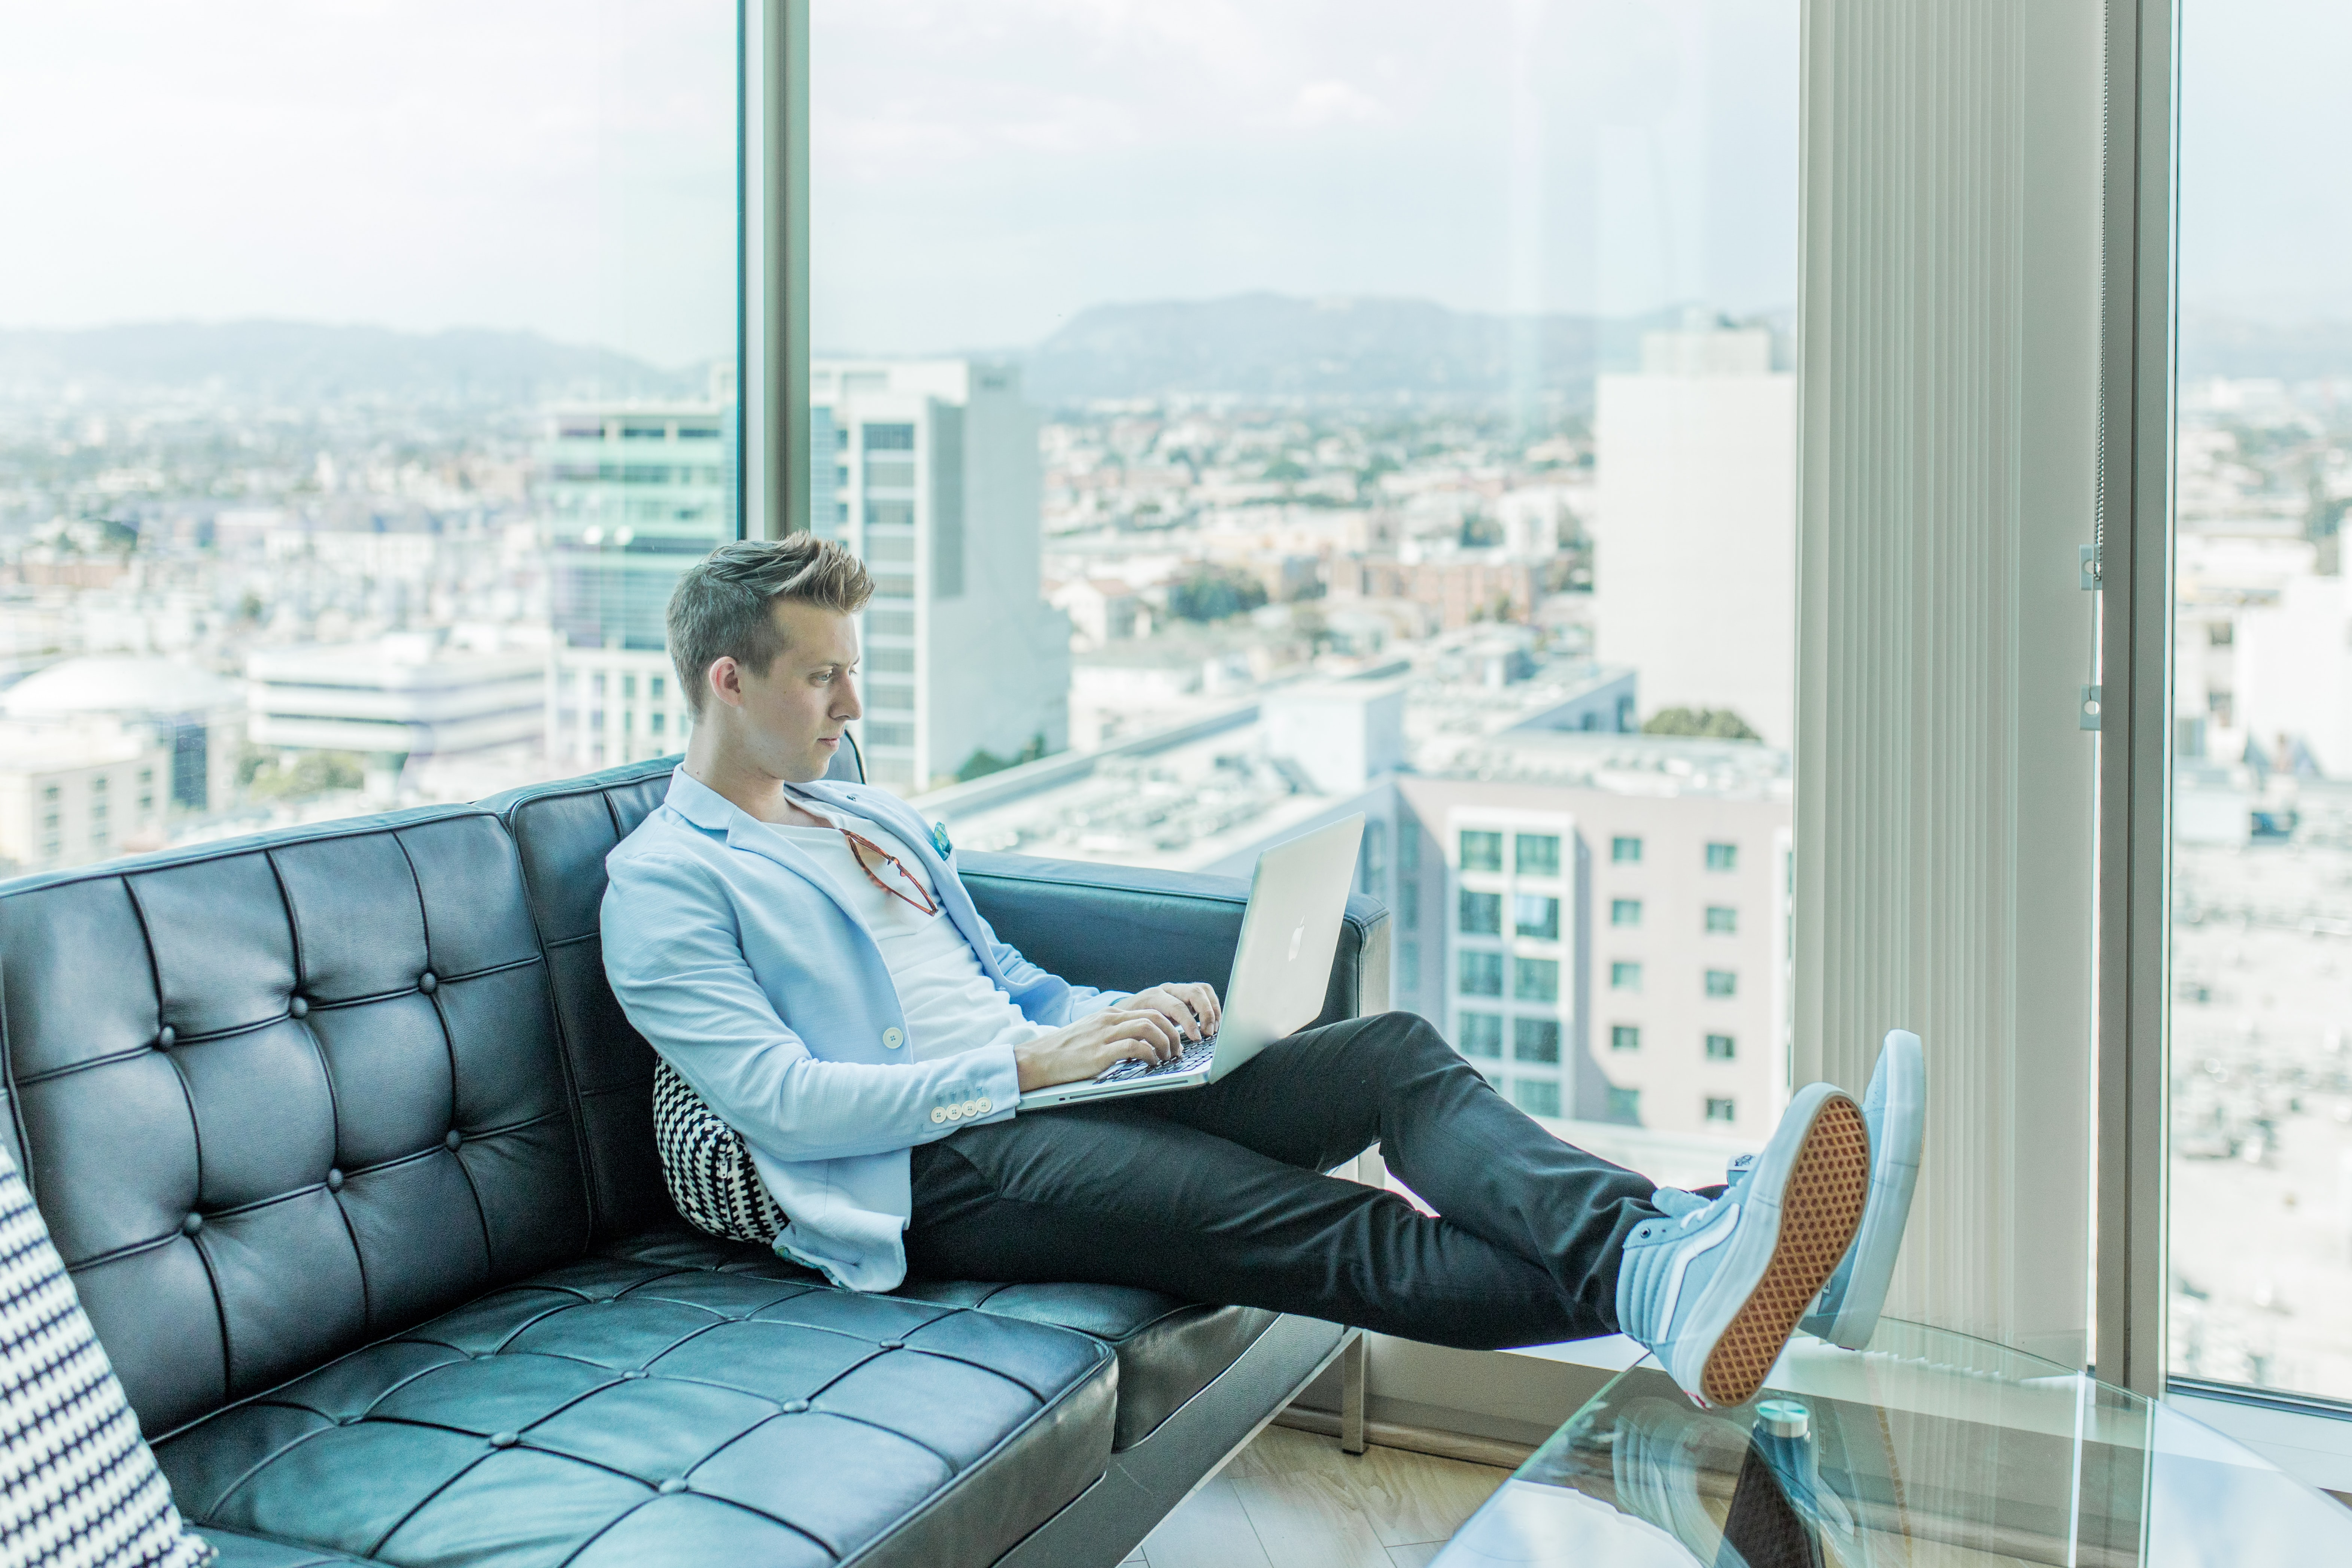 Man sitting on a sofa, working by the window